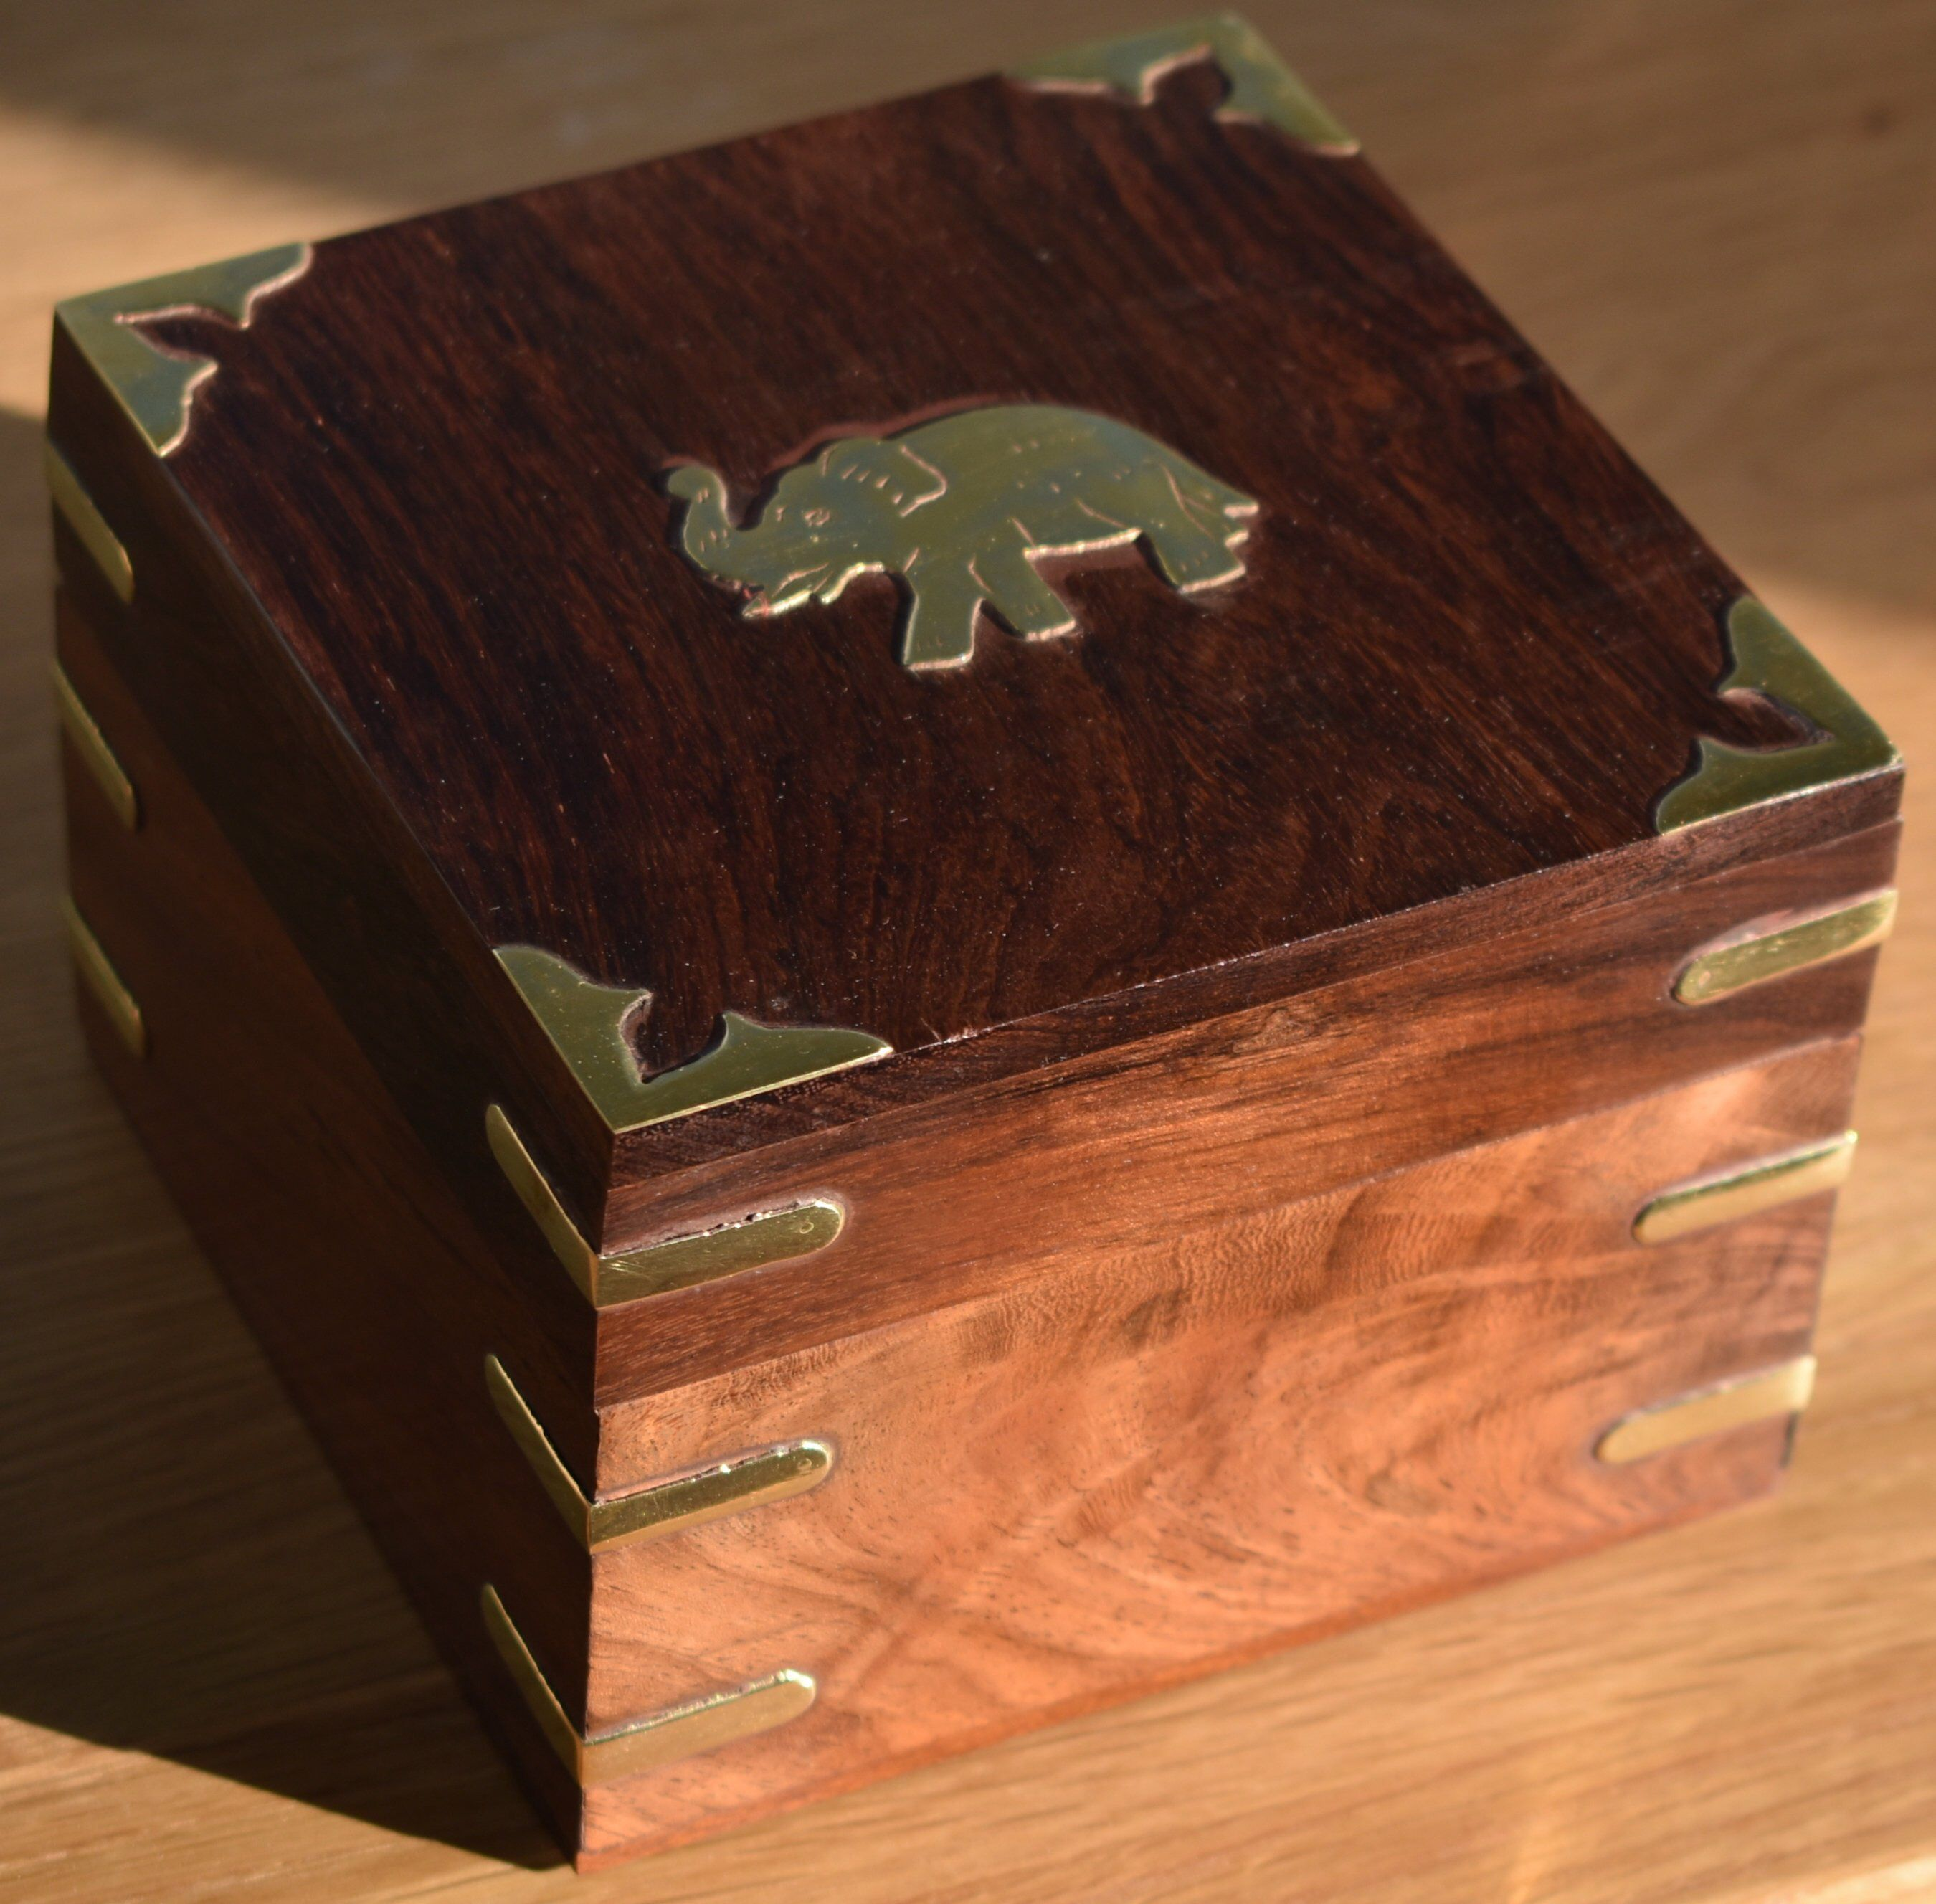 Solid Rosewood Storage Box Decor Hand Made Wooden Box Wooden Storage Box Handicraft With Images Wooden Storage Boxes Wooden Storage Wooden Boxes